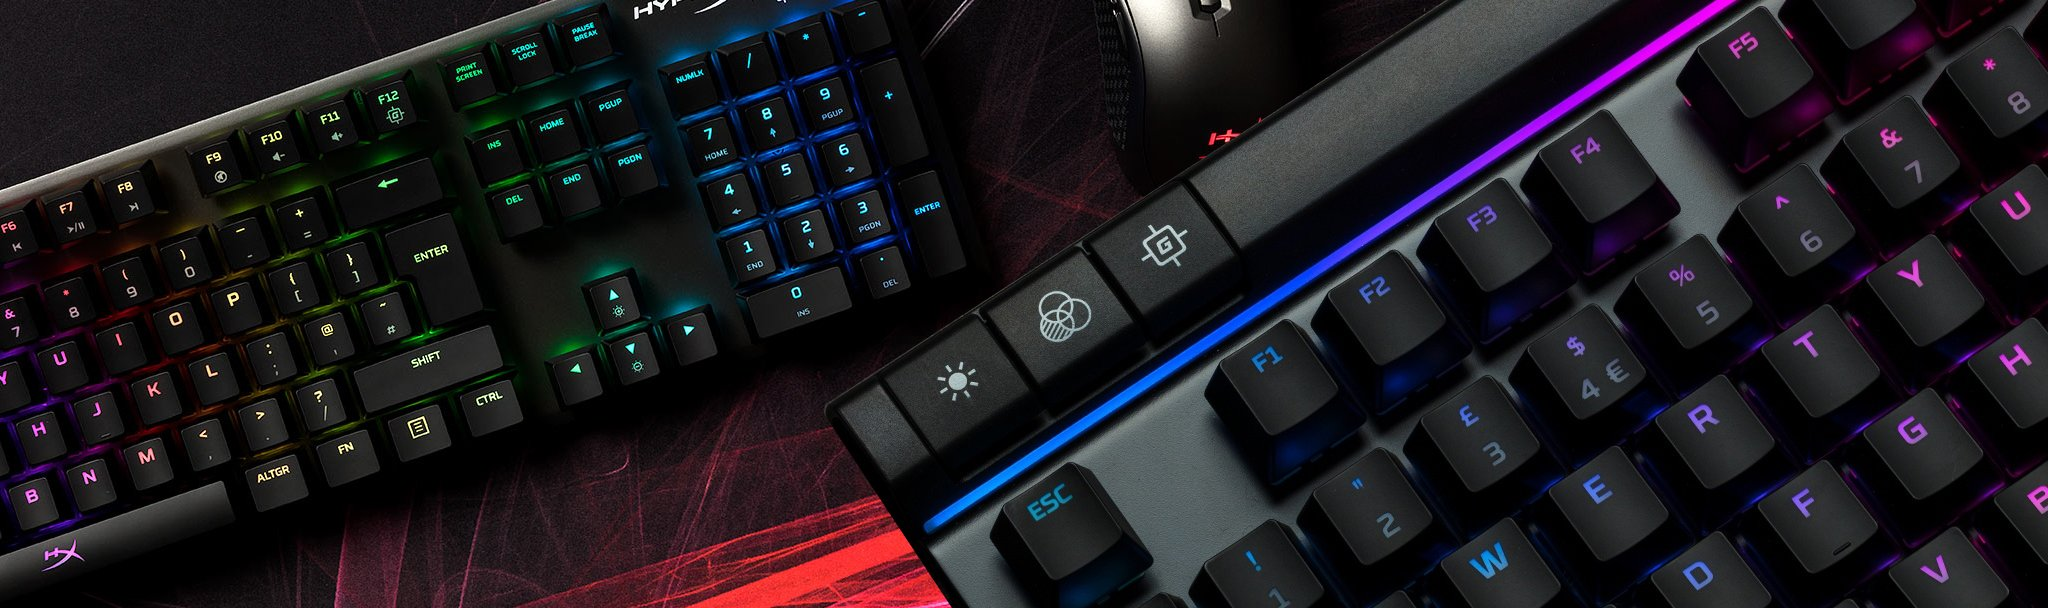 HyperX black friday deals keyboards